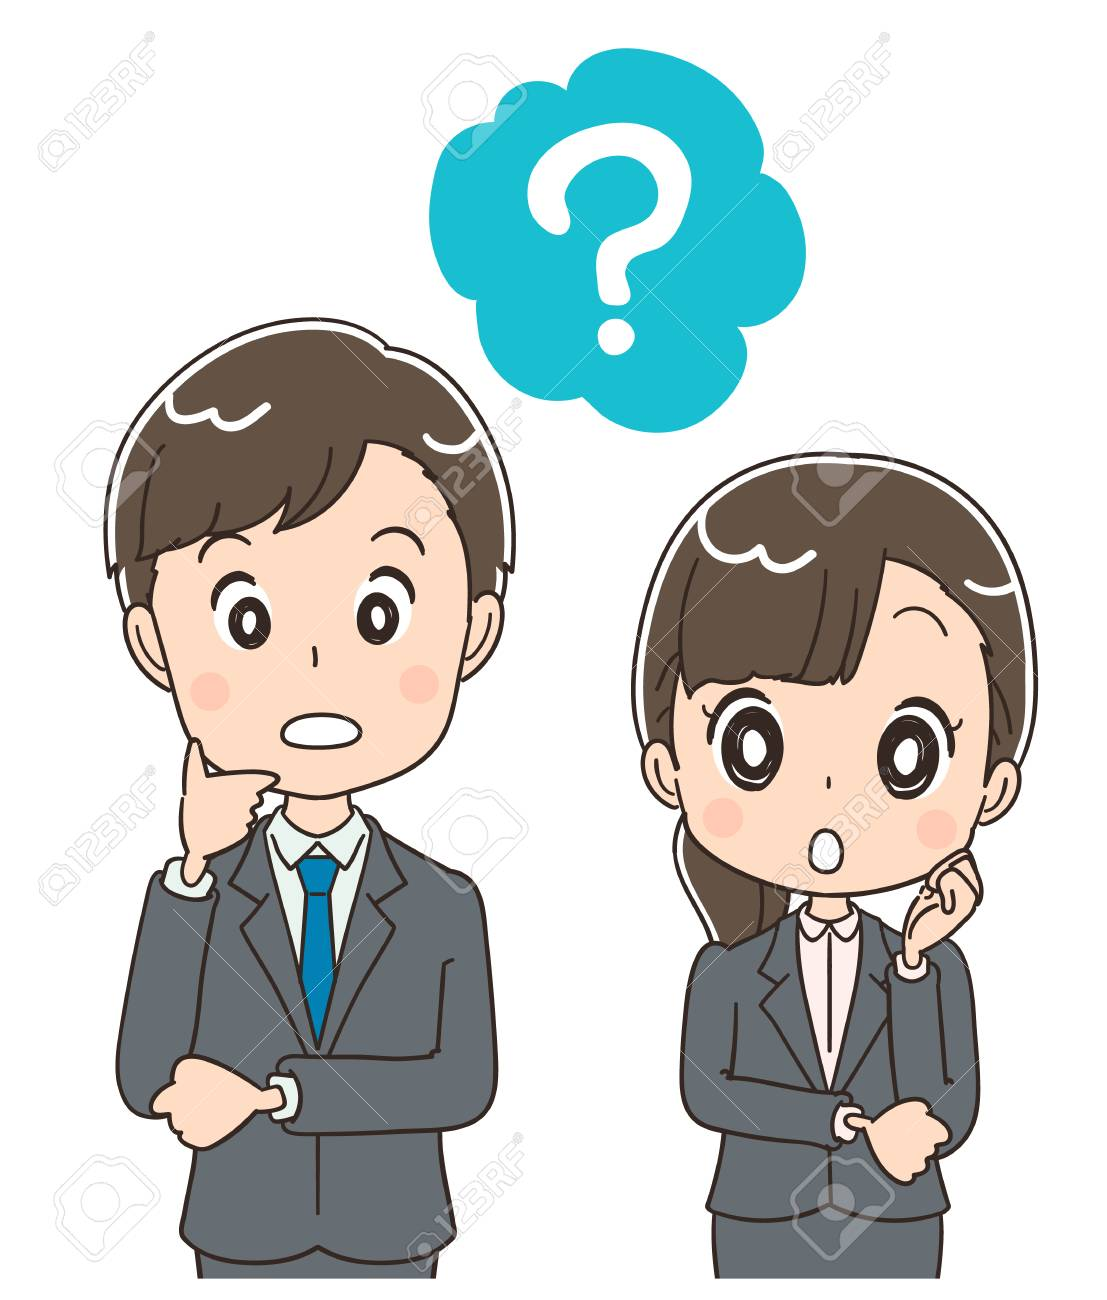 Young businessmen and men ask questions. - 92653891